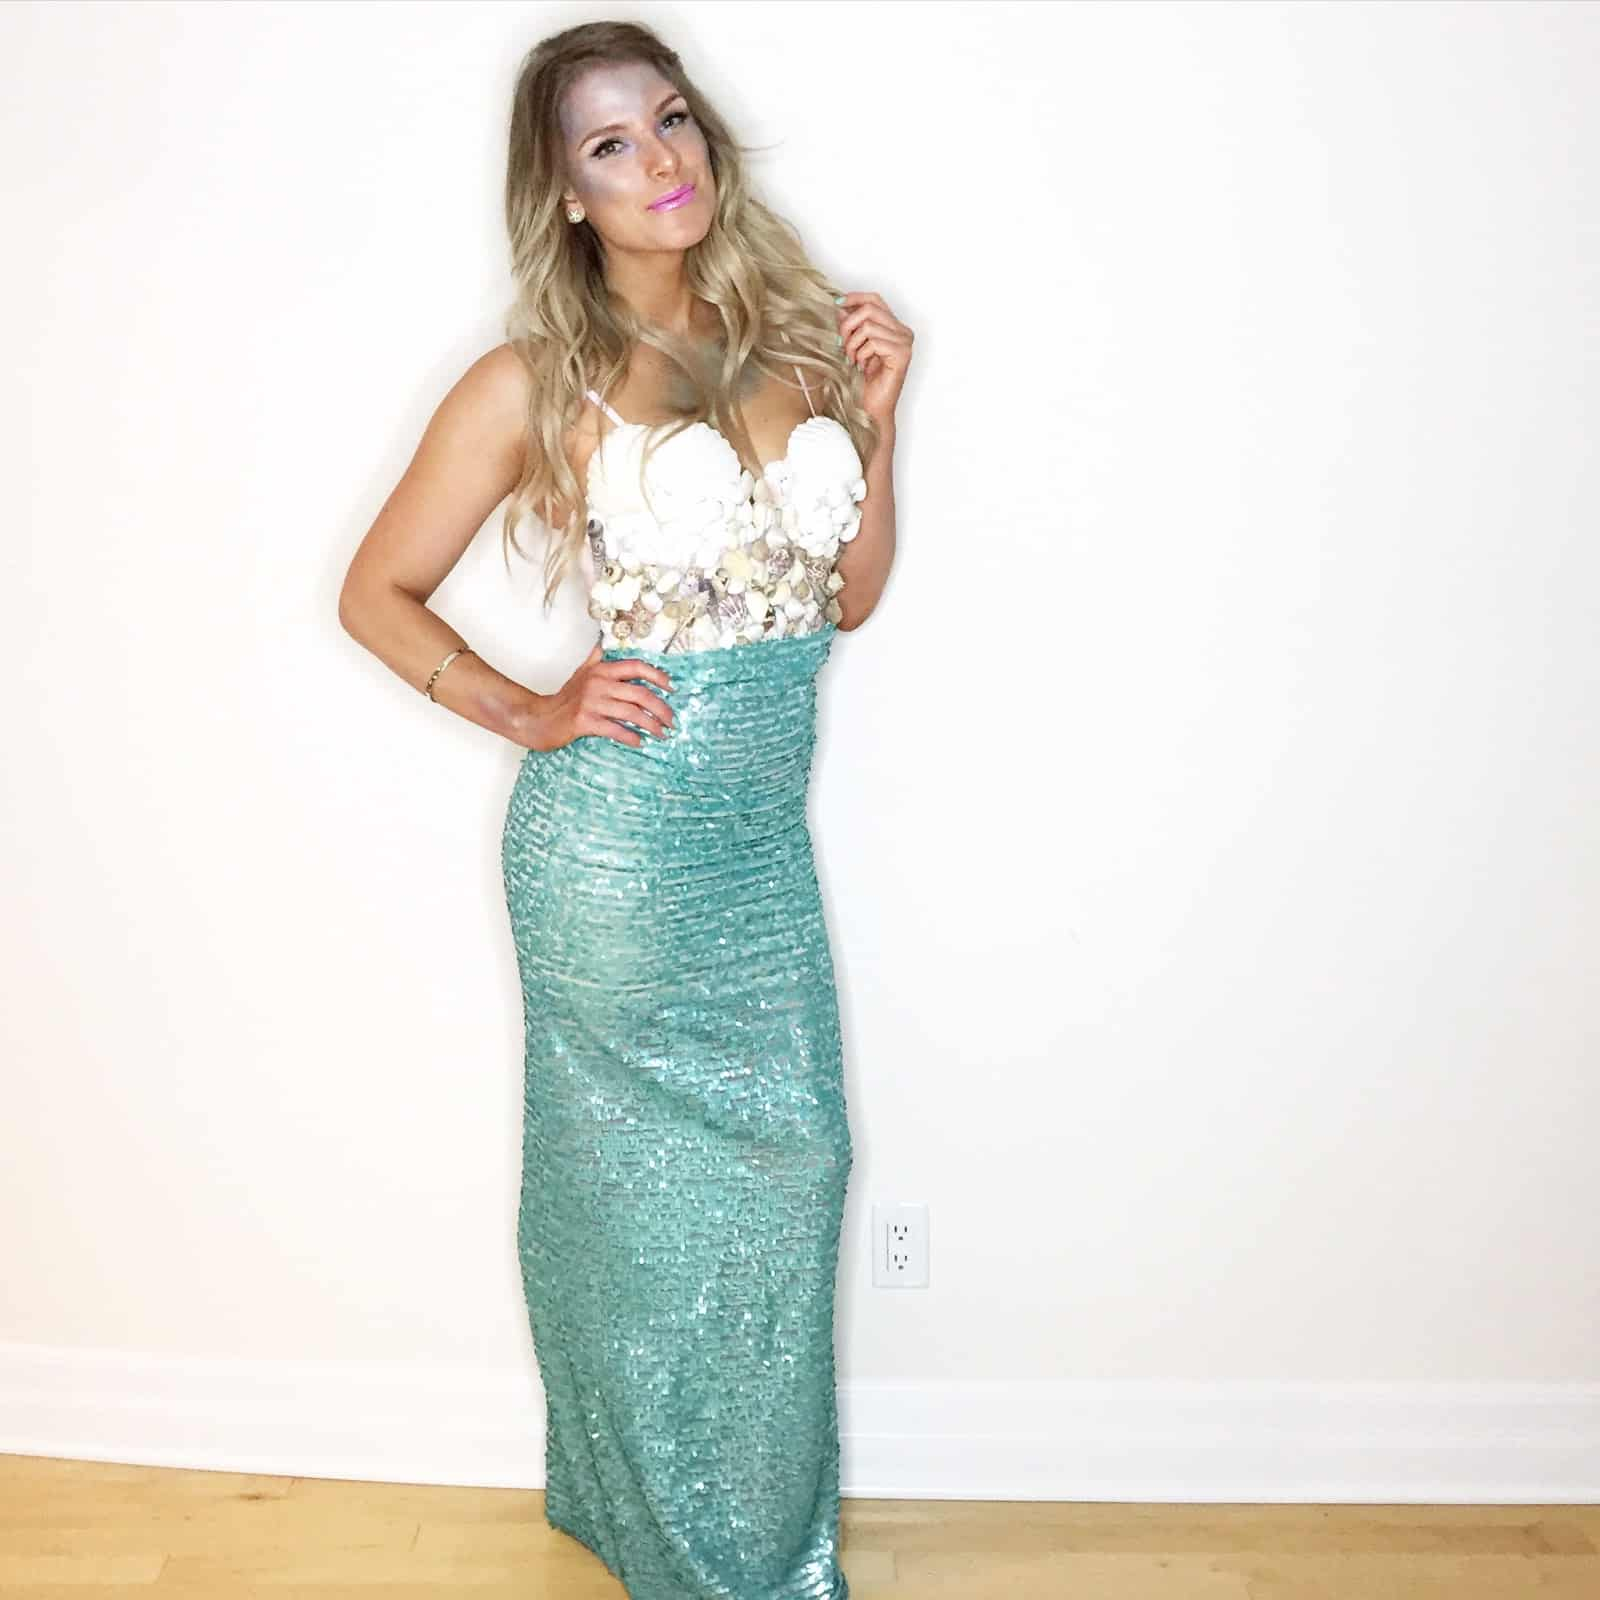 15 super creative halloween costumes you can diy diy mermaid costume solutioingenieria Gallery